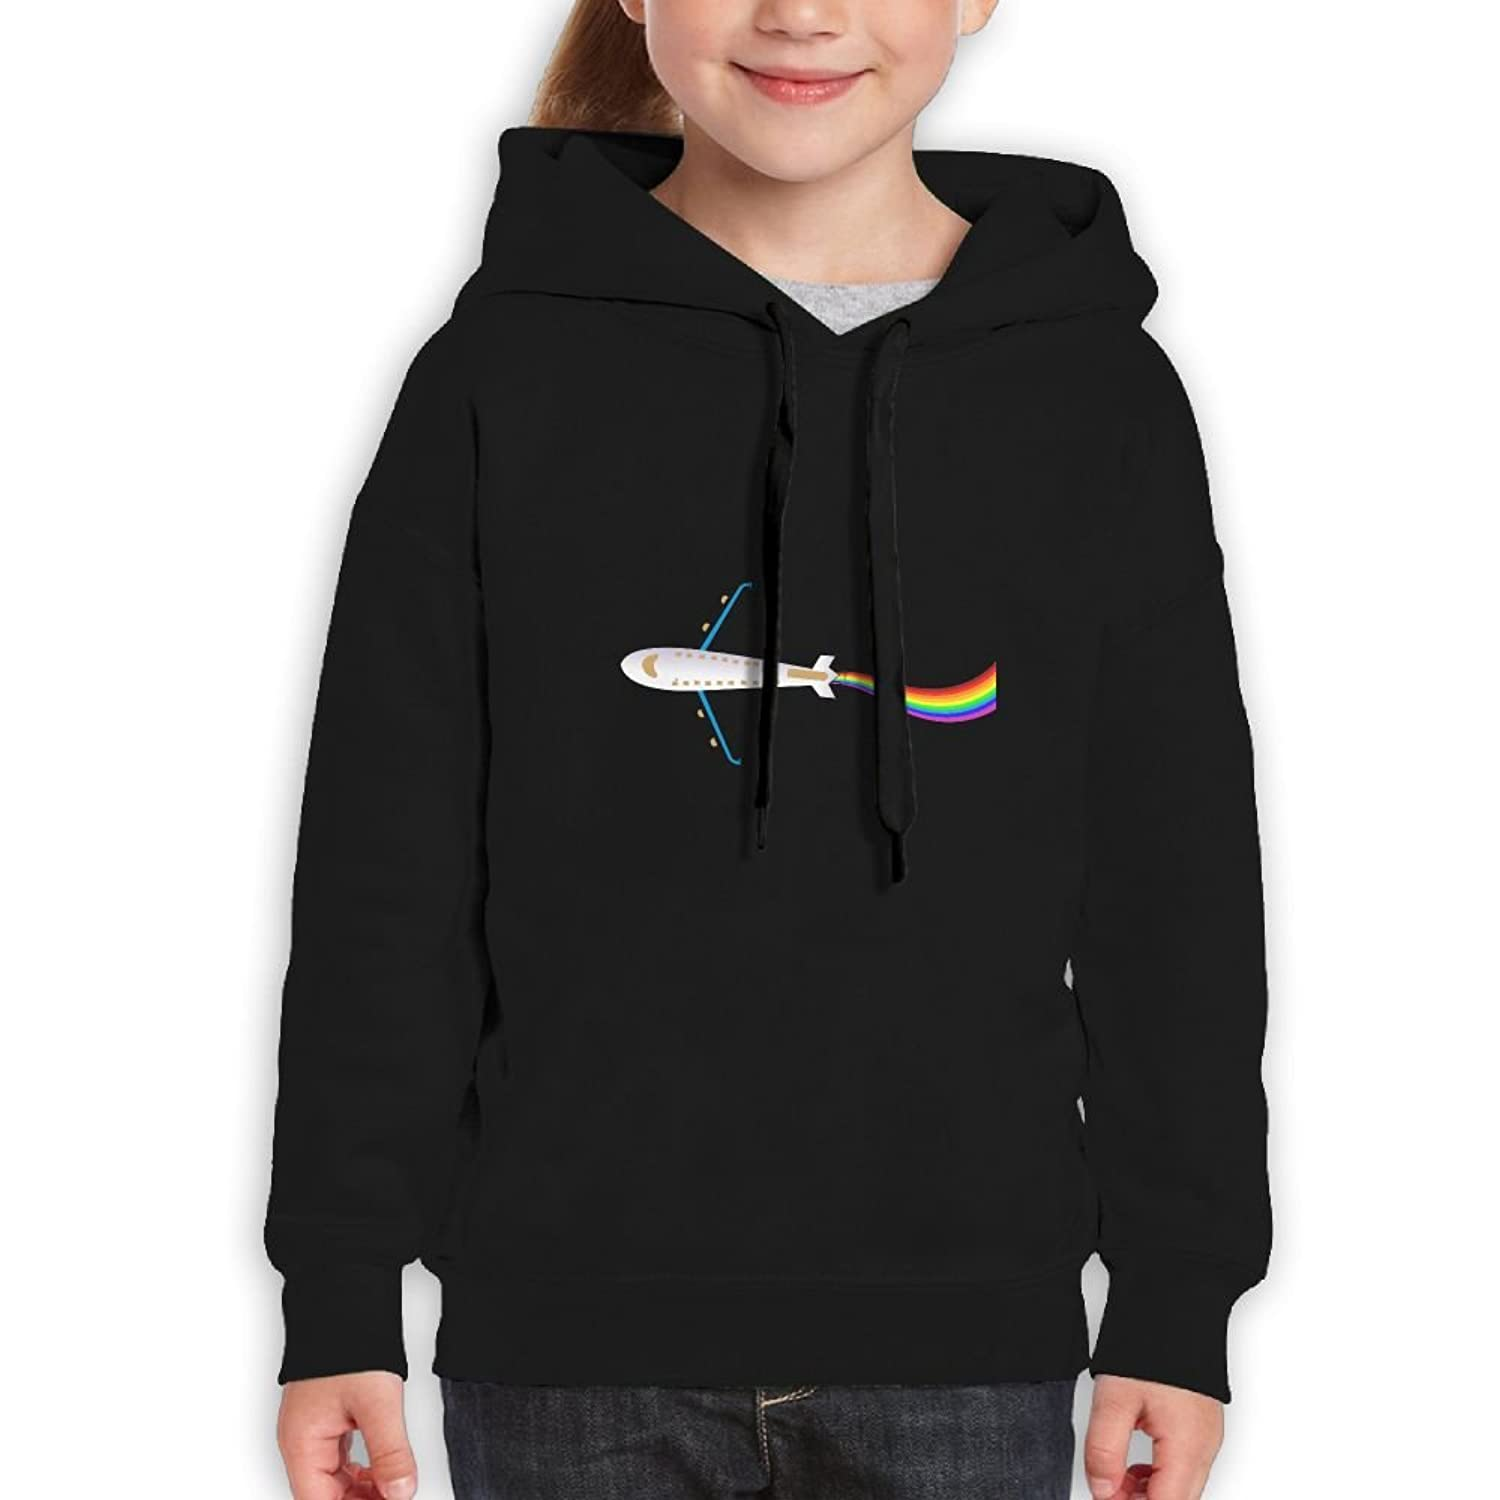 Airplane Rainbow Tail Girls Boys Teens Cotton Long Sleeve Cute Sweatshirt Hoodie Unisex